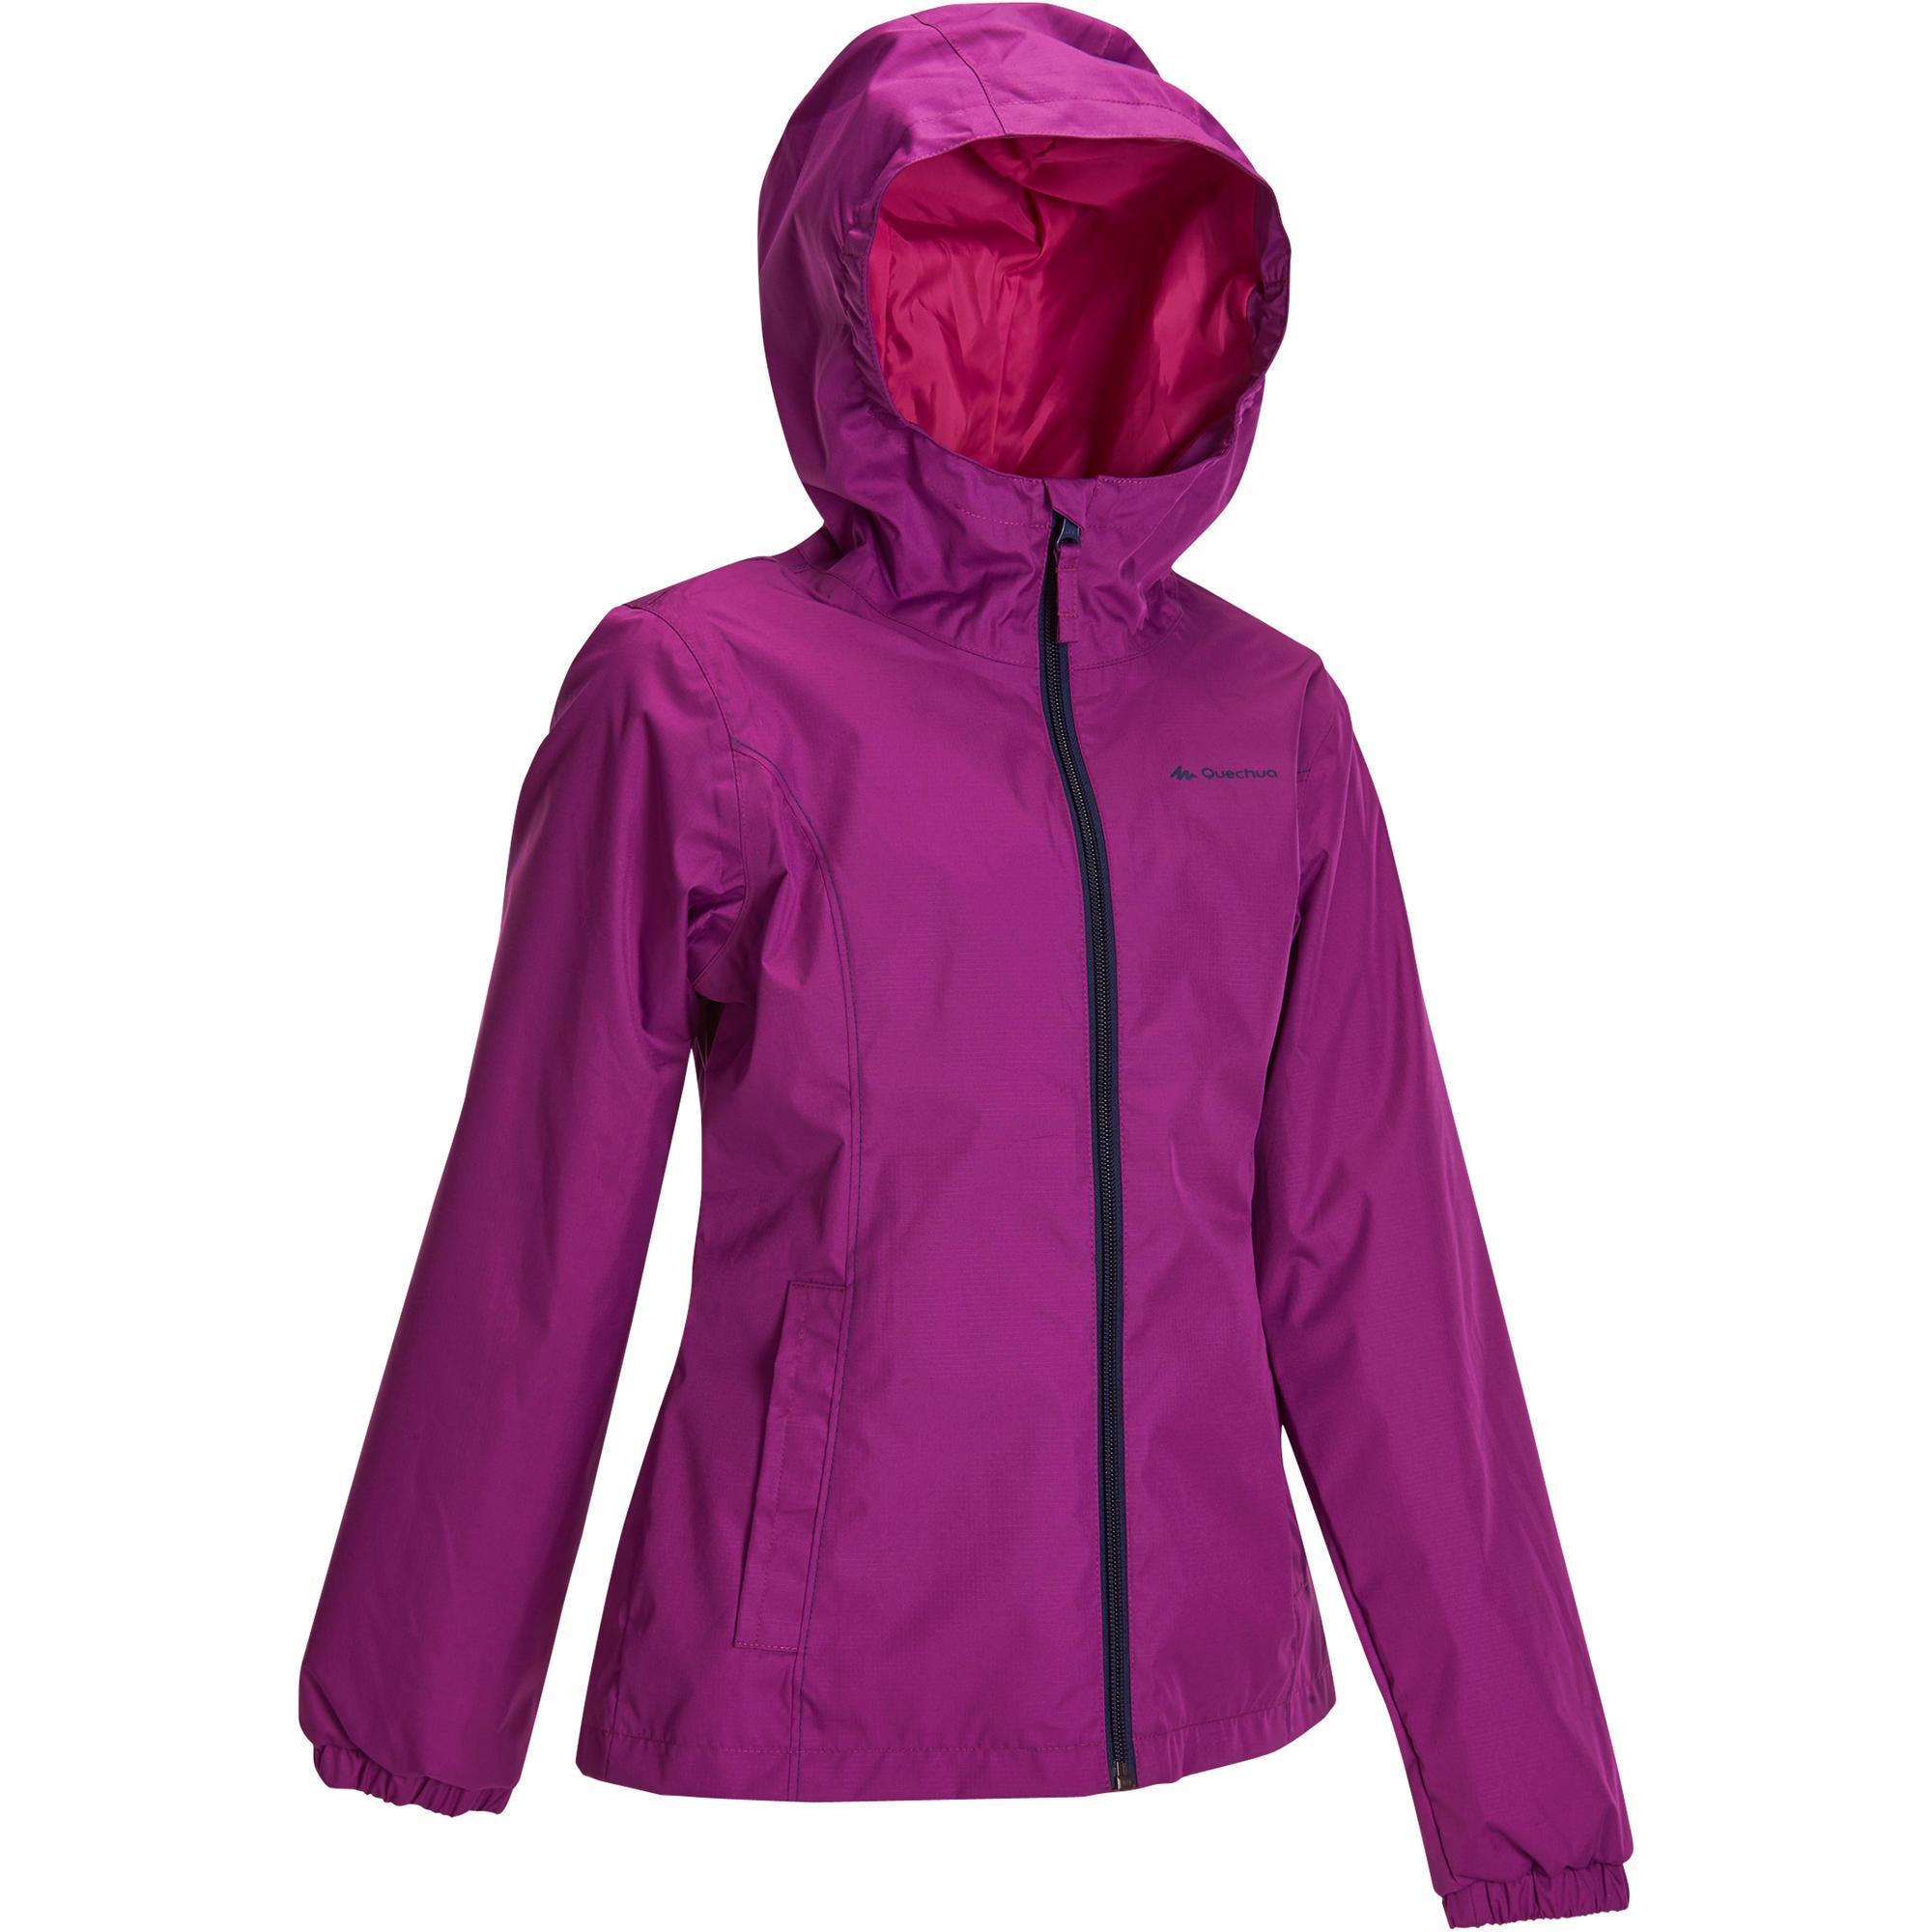 Hike 500 Girls Waterproof Hiking Jacket Purple